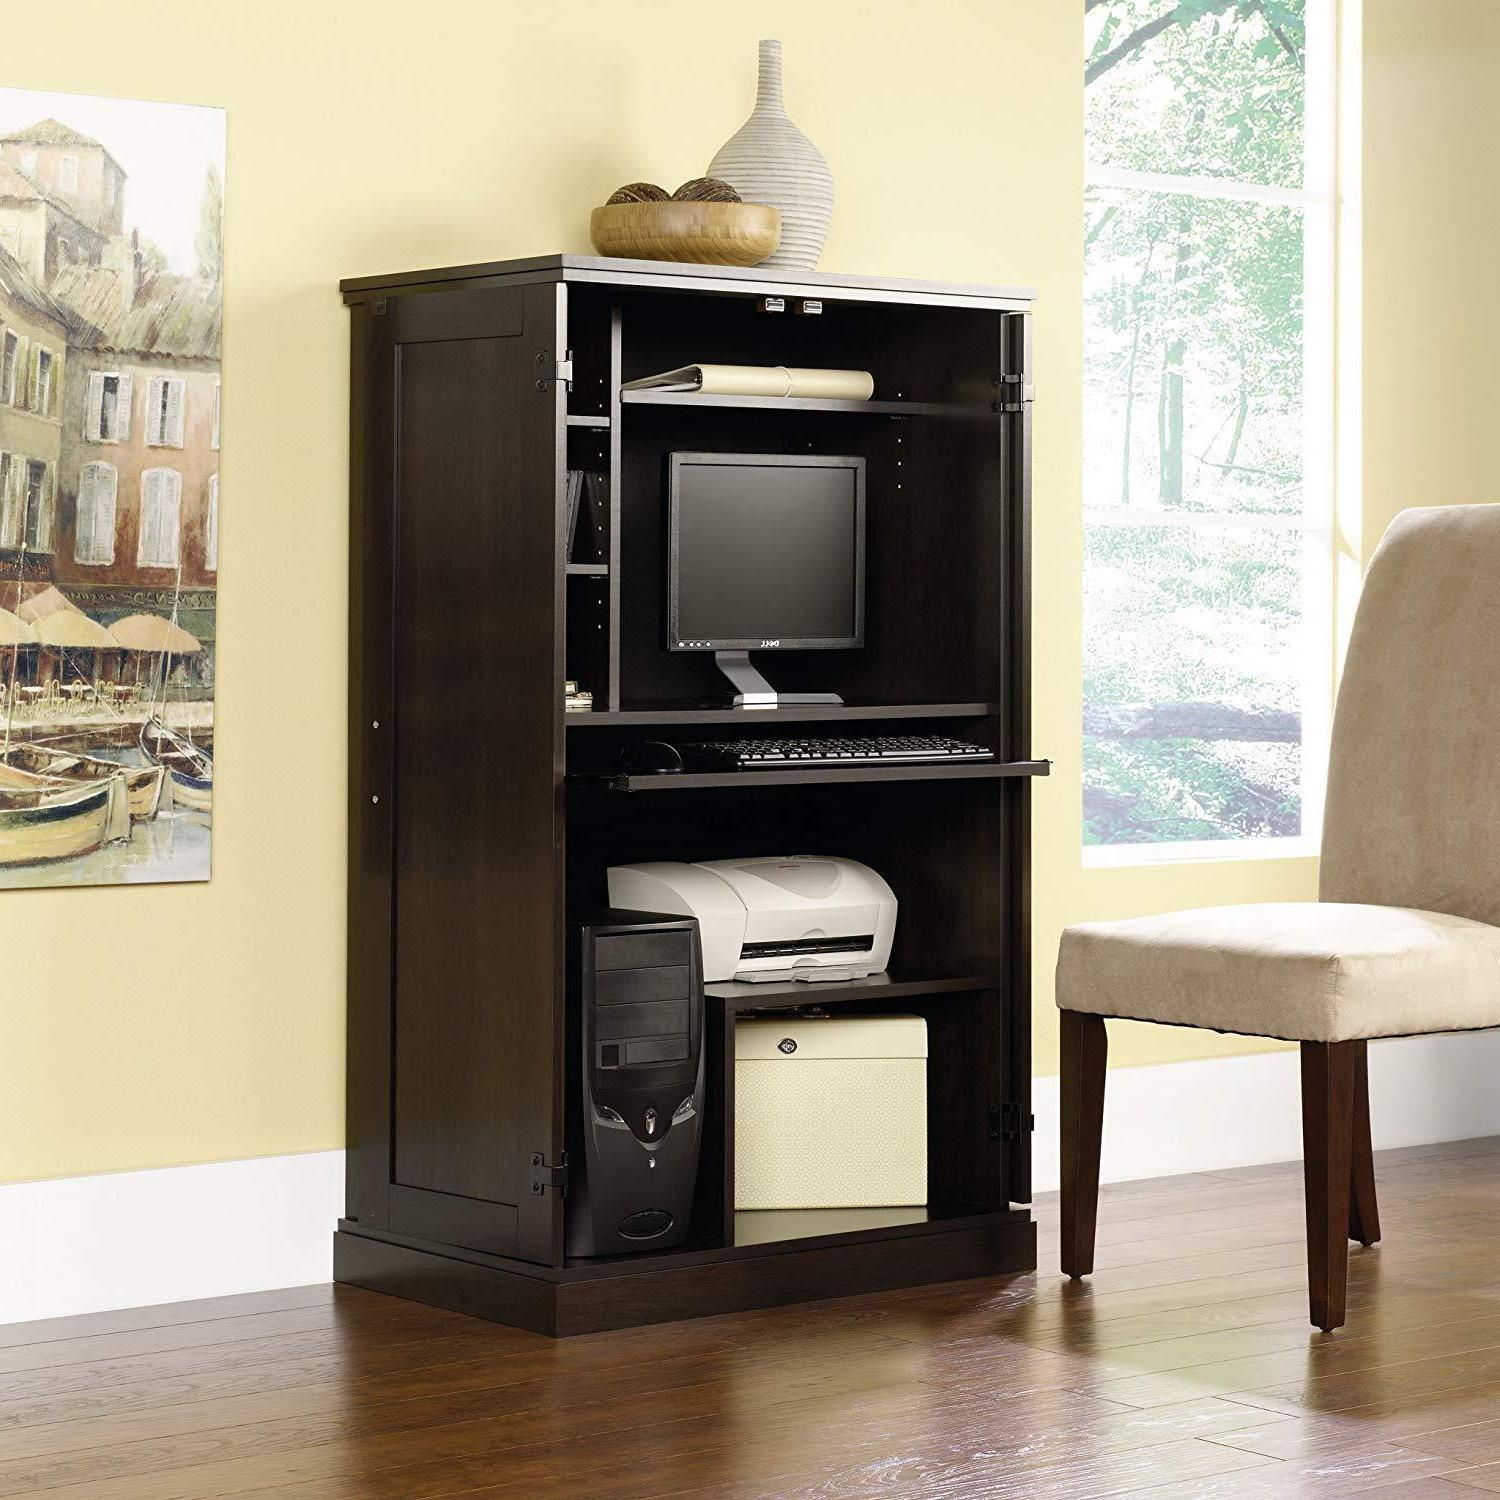 Computer Armoire Cabinet Armoires Home Storage Cabinets